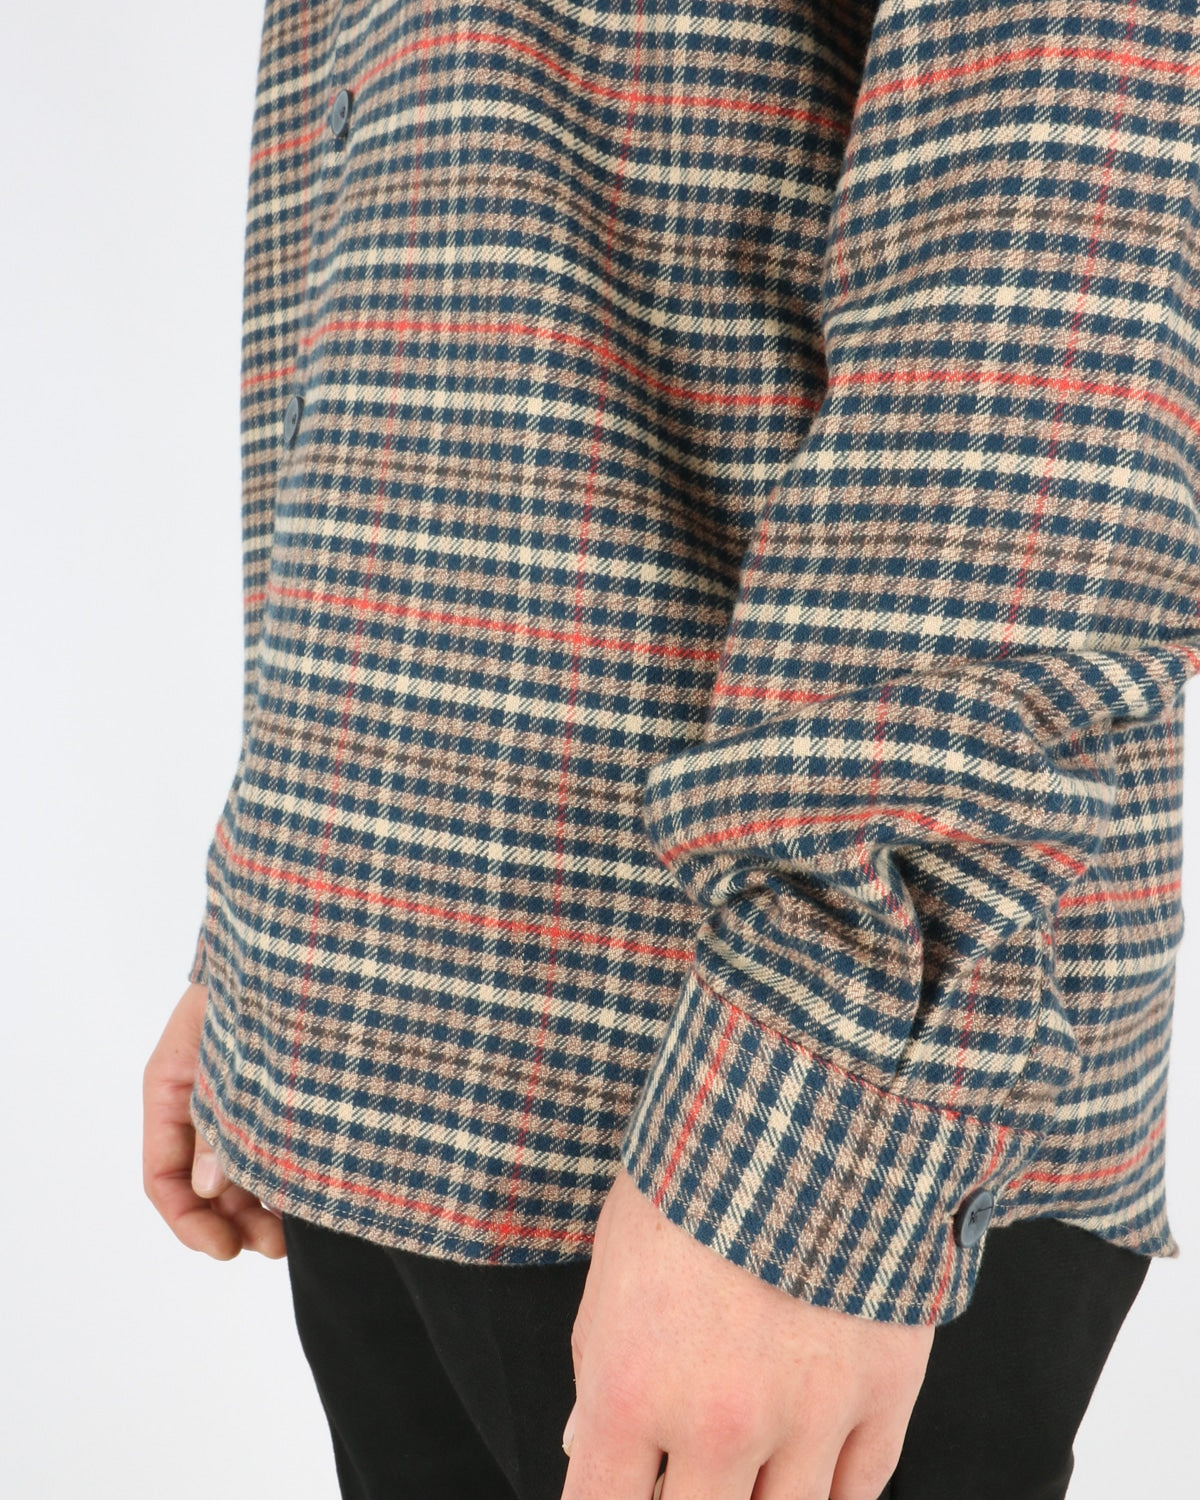 libertine libertine_miracle shirt_twill red check_4_5